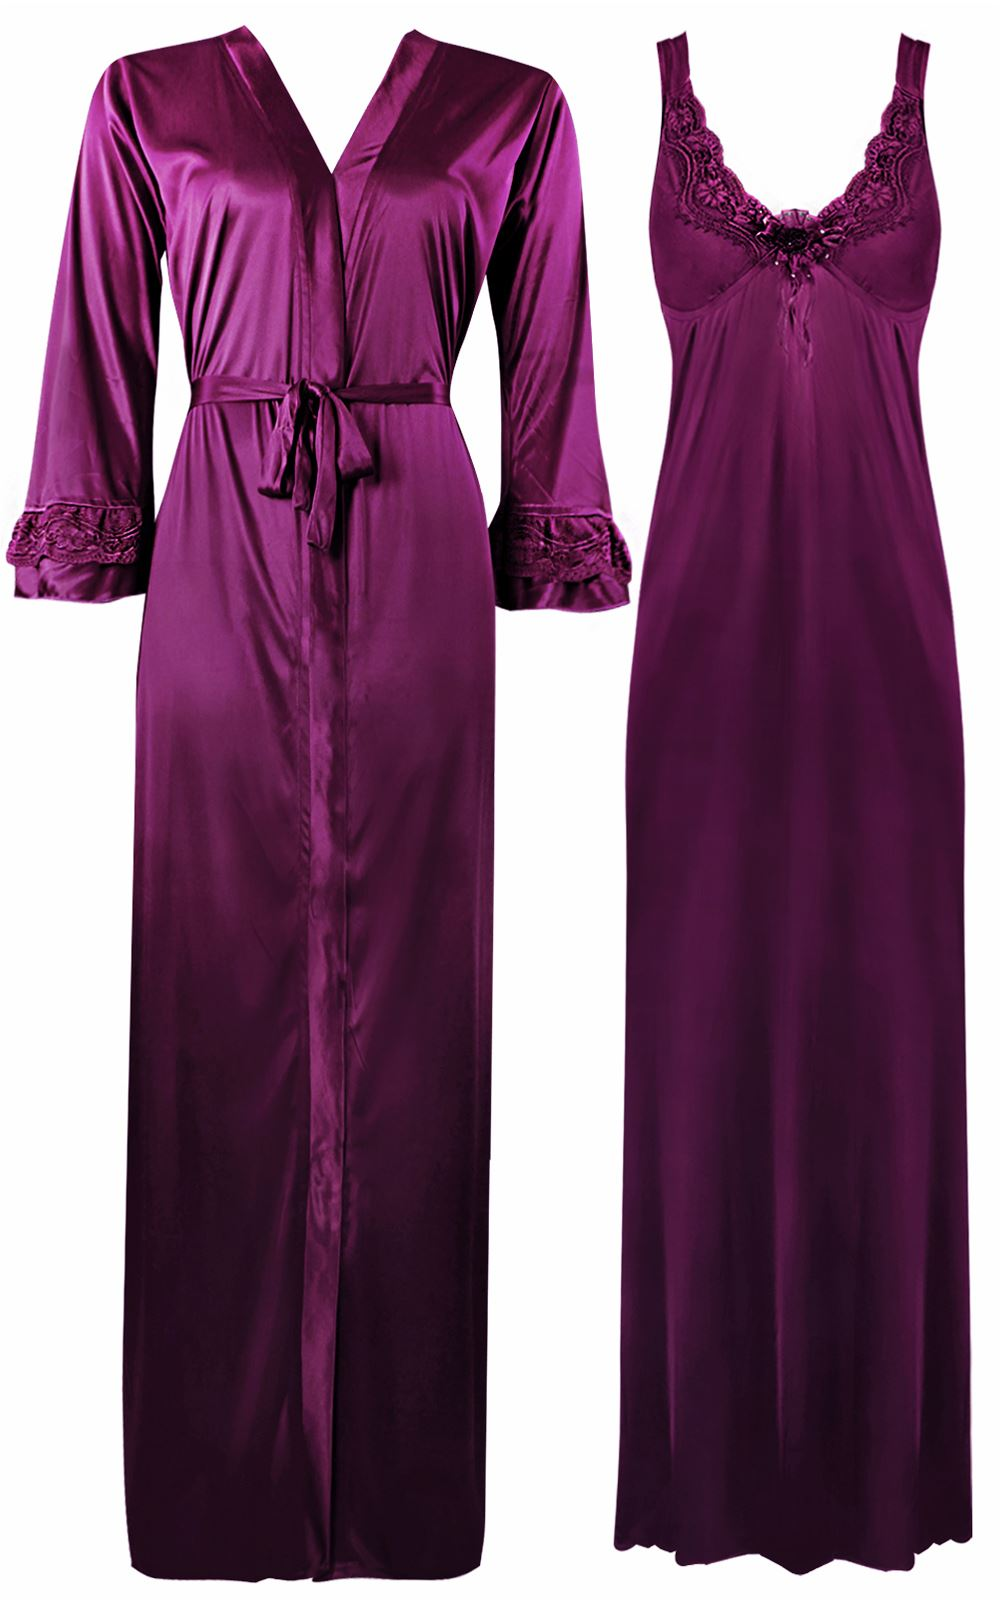 Color: Dark Wine 2 Piece Satin Nighty and Robe With Long Sleeve Dressing Gown Size: XL